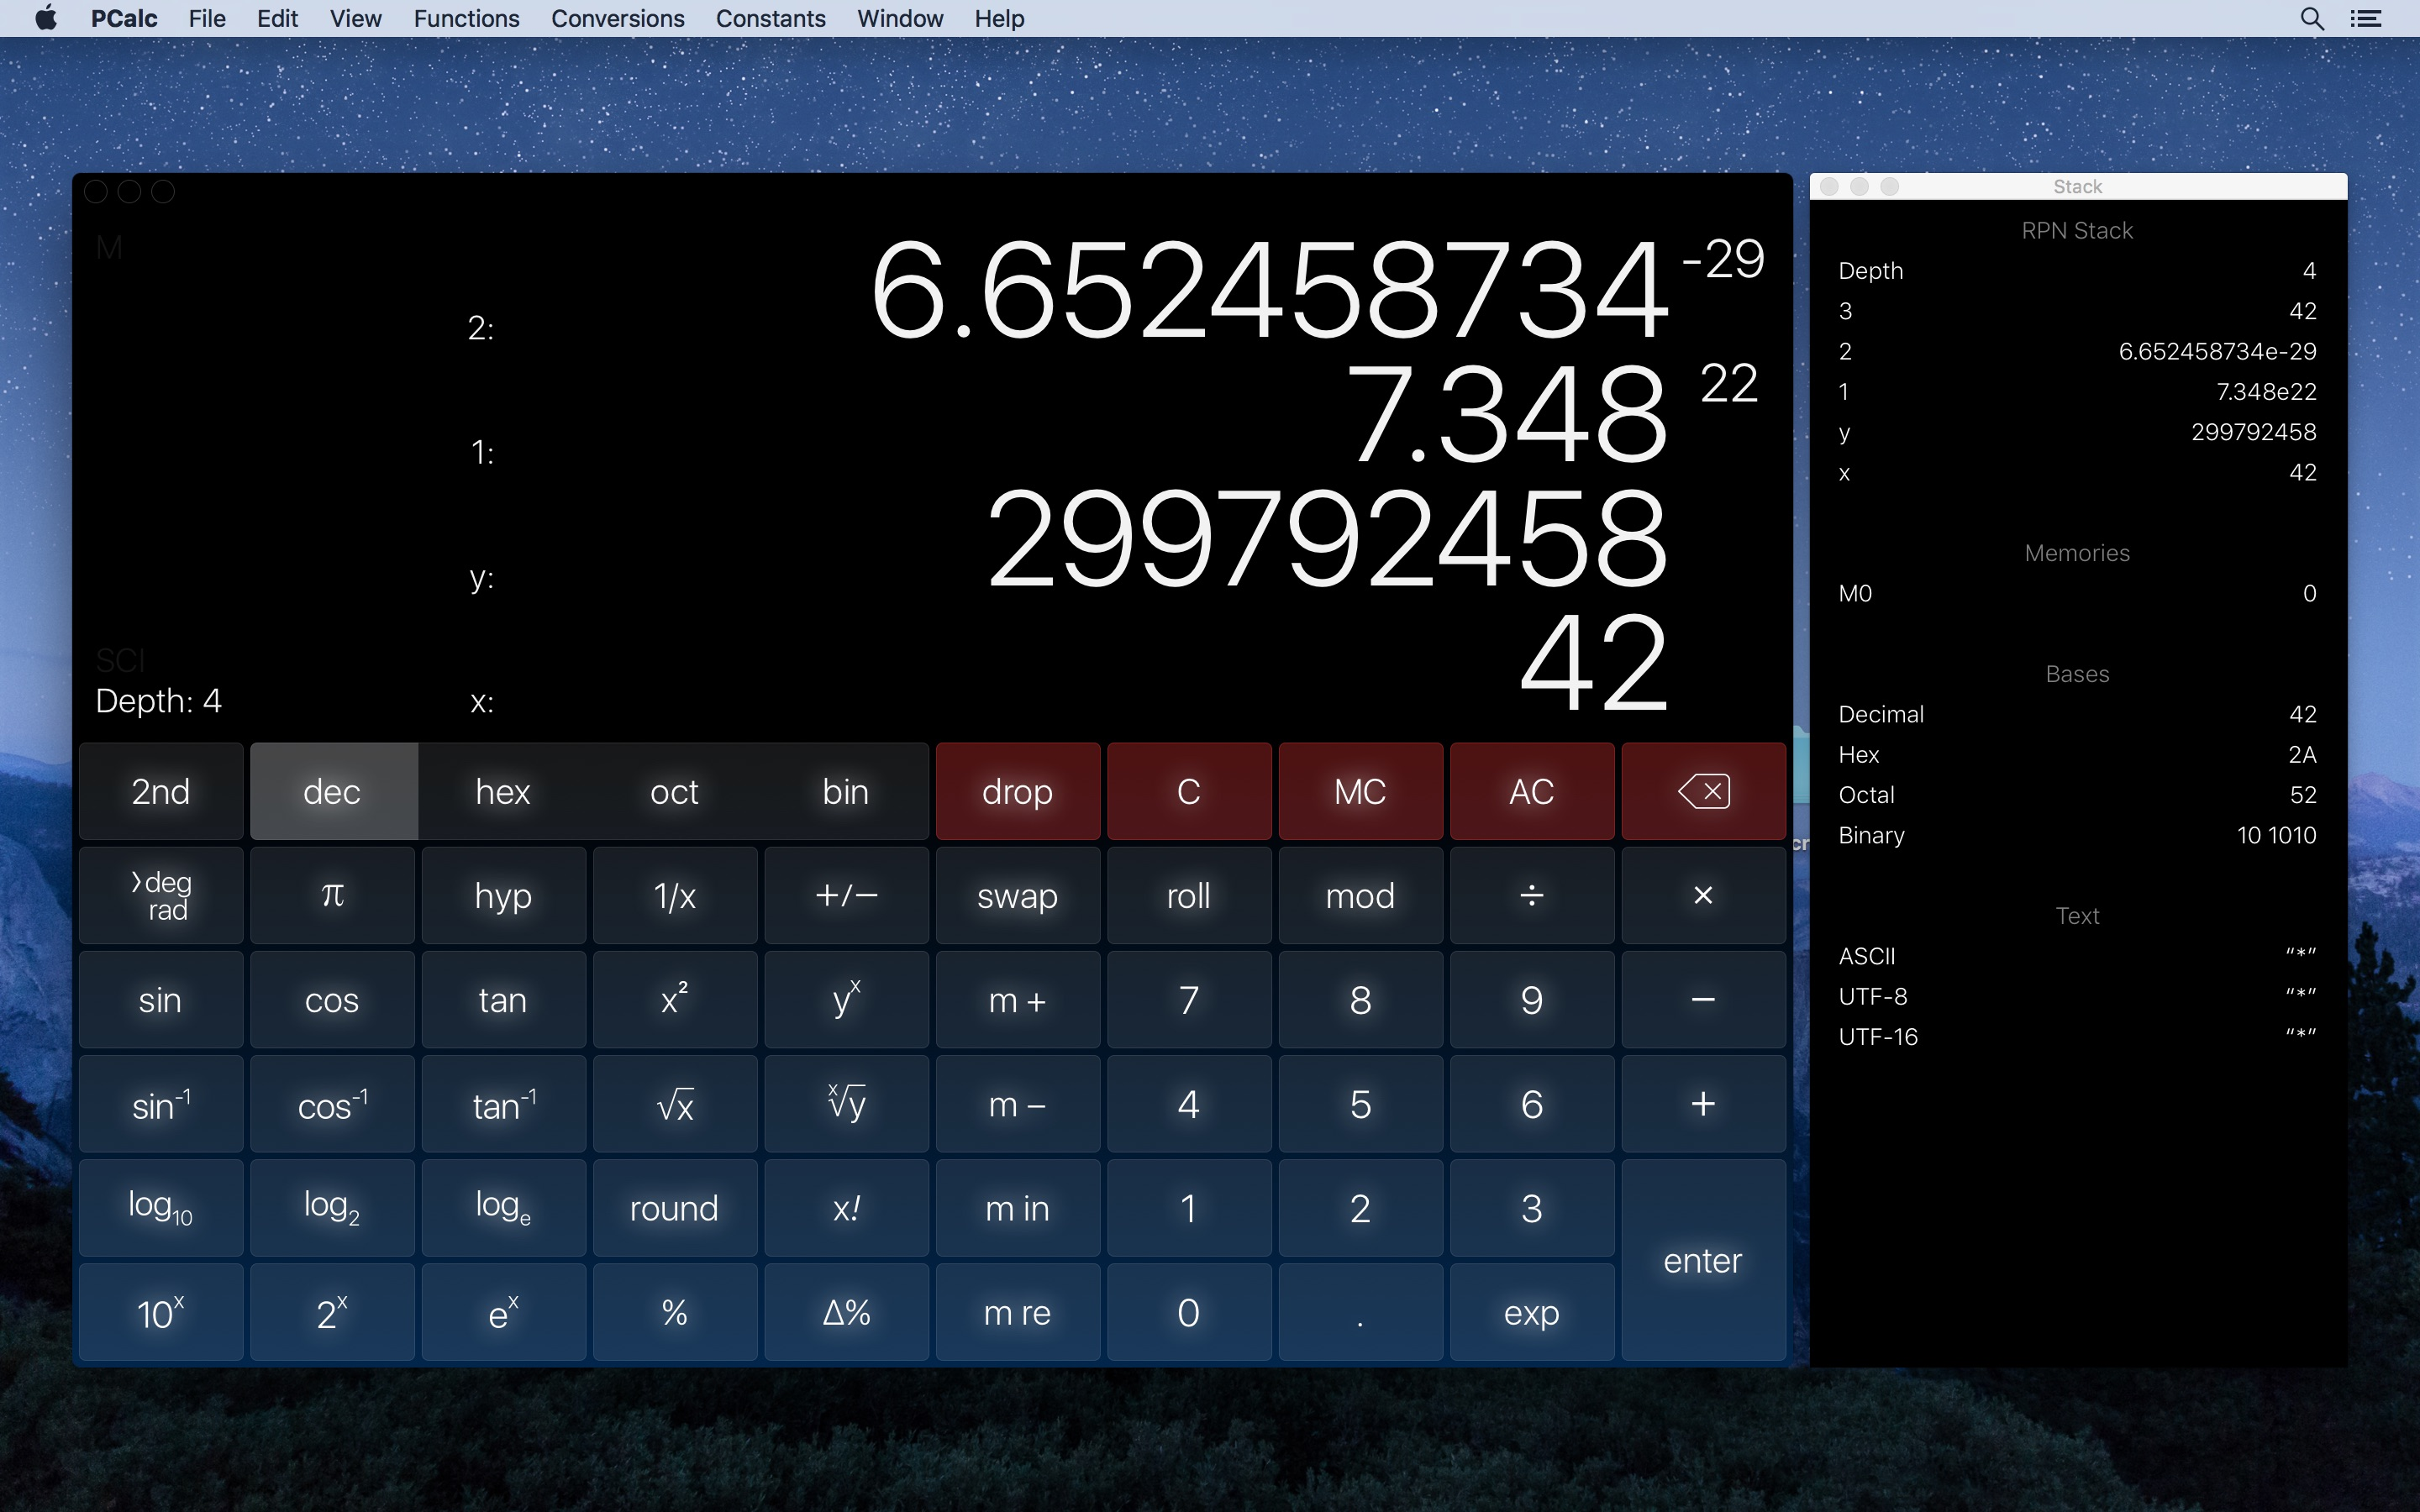 Screenshot do app PCalc